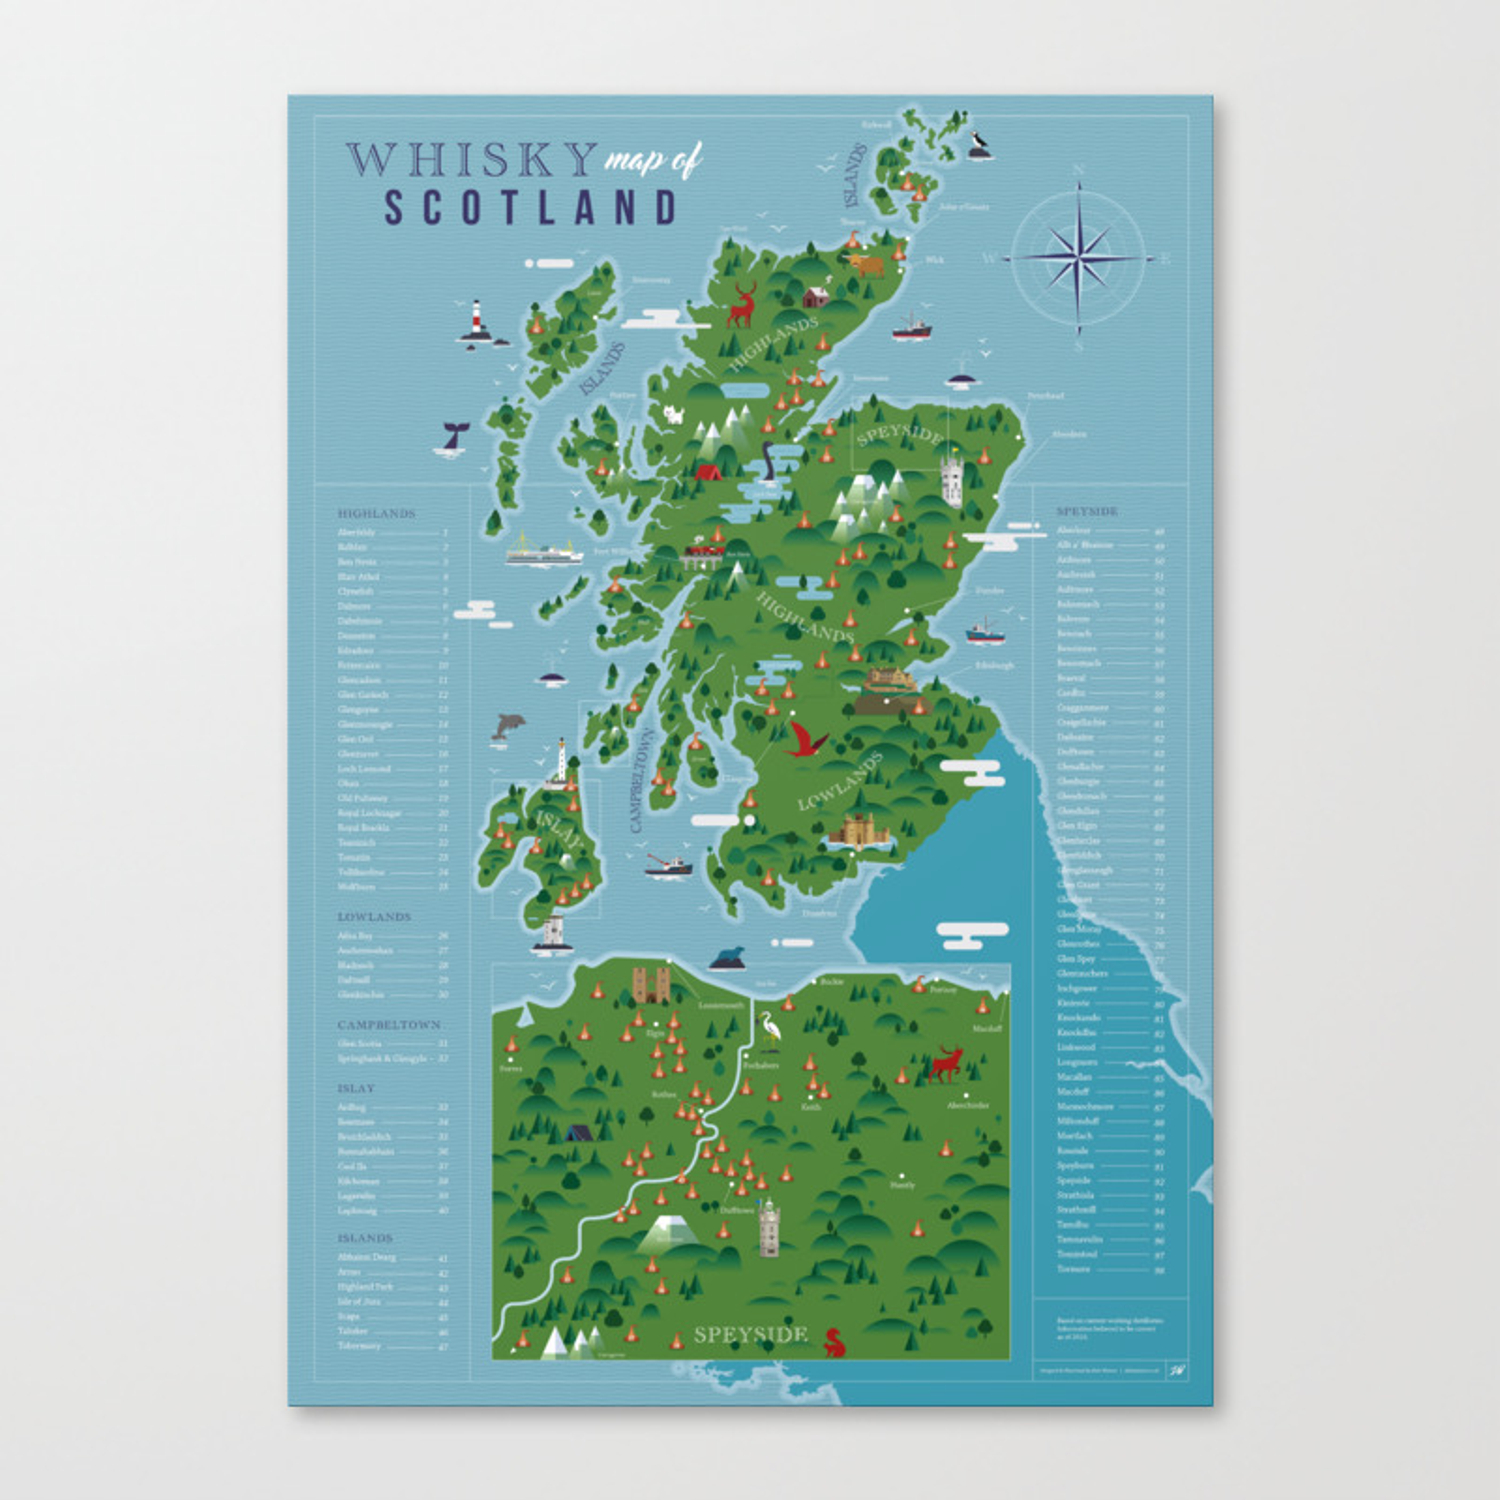 It's just a picture of Printable Map of Scotland pertaining to white